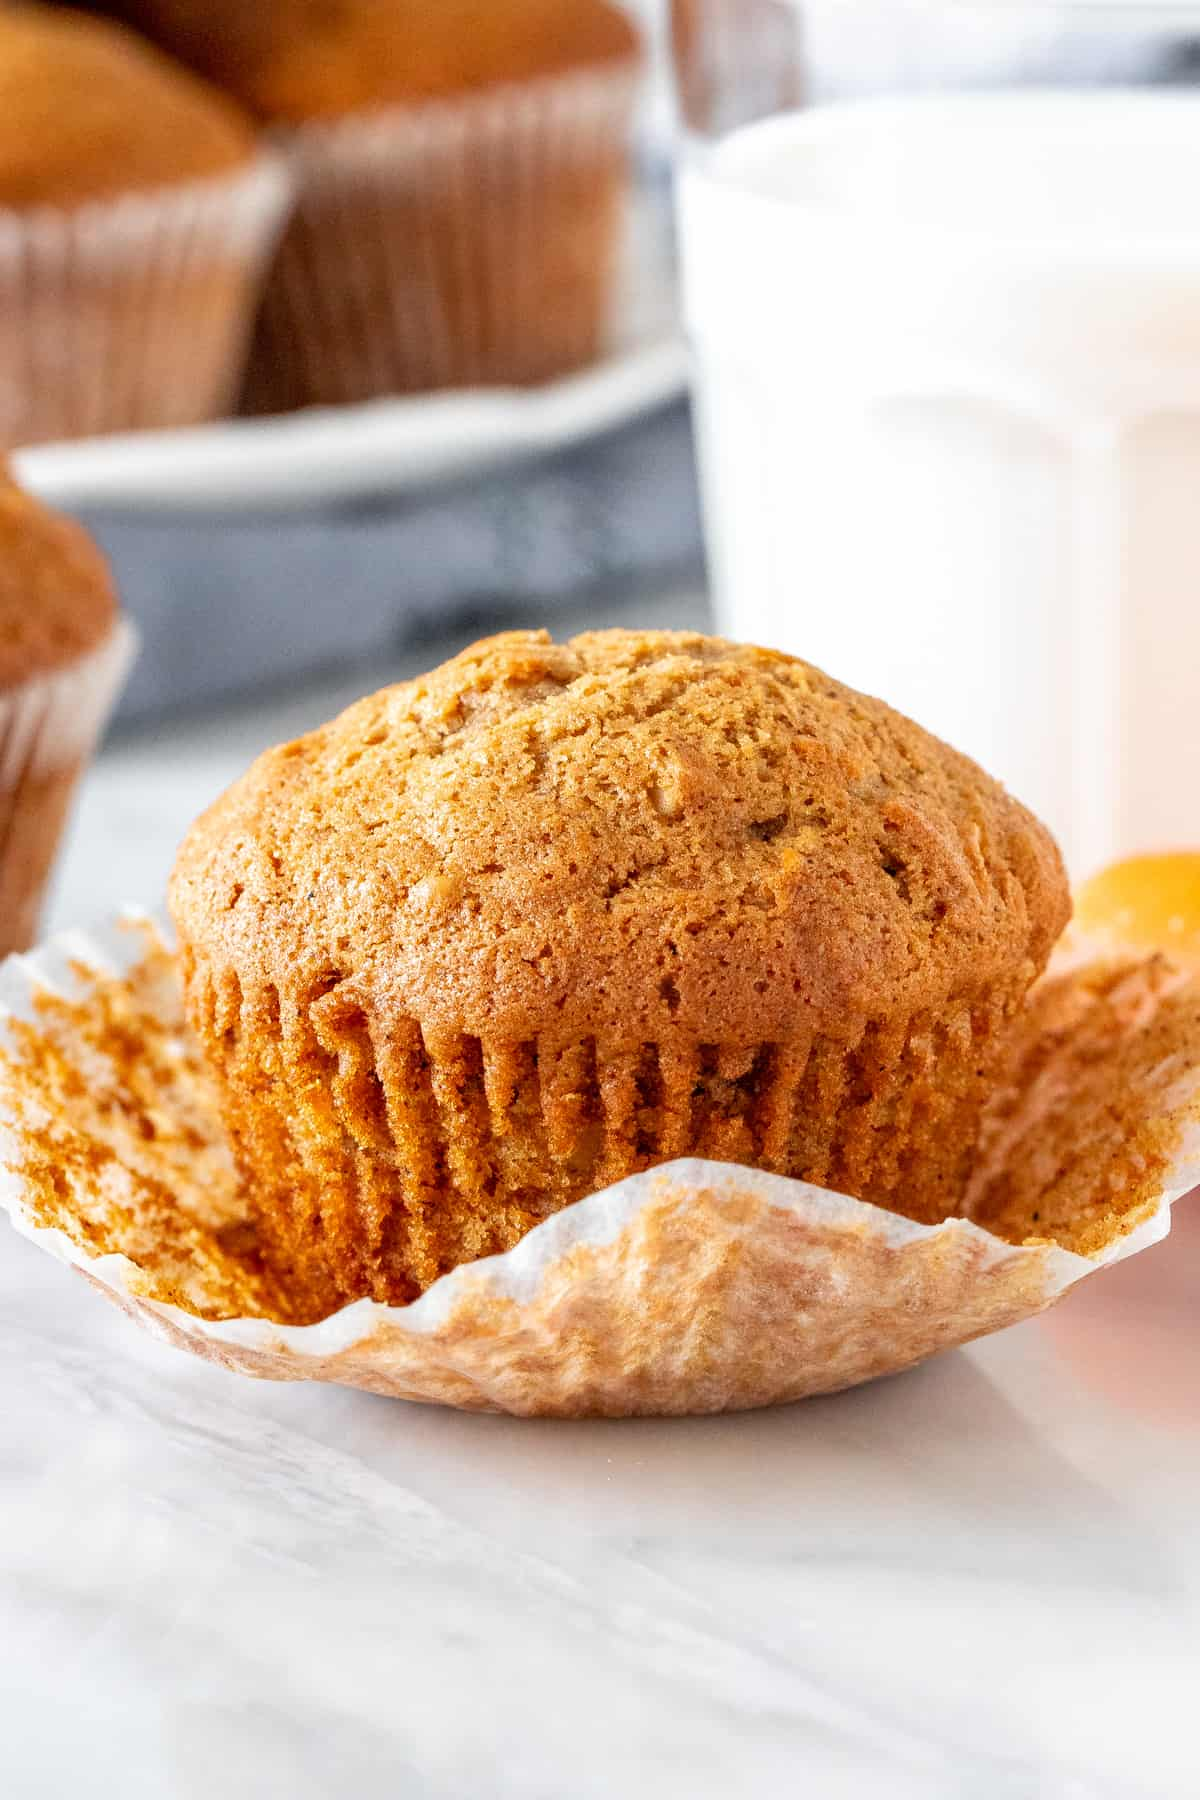 Carrot cake muffin with a glass of milk